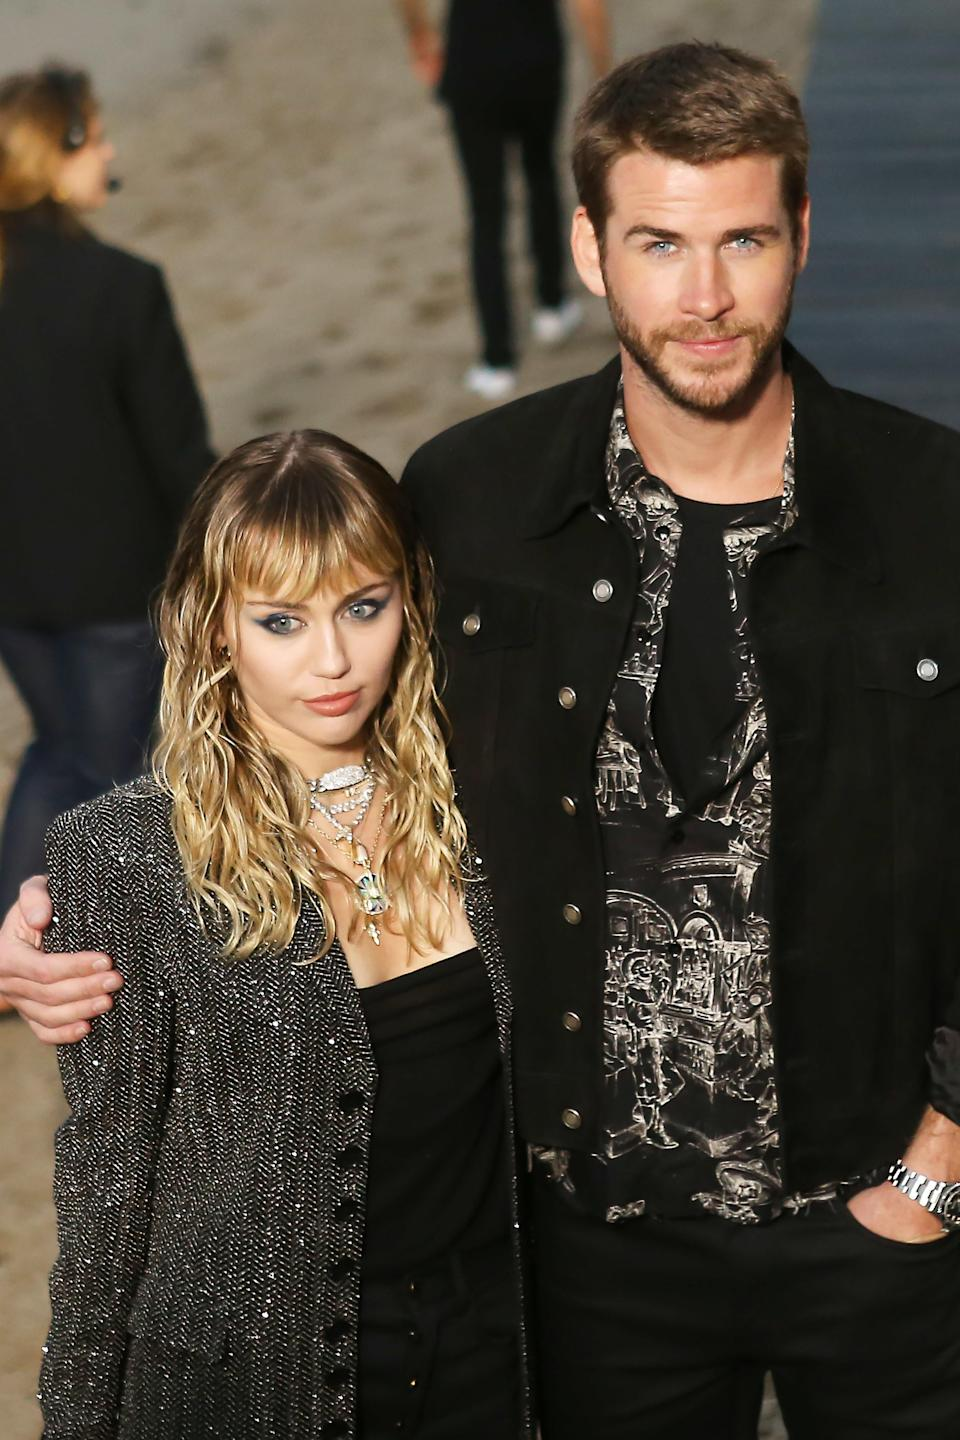 """On August 10, Miley Cyrus and Liam Hemsworth announced they were splitting after eight months of marriage. """"Liam and Miley have agreed to separate at this time,"""" a rep for Cyrus told <em><a href=""""https://people.com/music/miley-cyrus-liam-hemsworth-split/"""" rel=""""nofollow noopener"""" target=""""_blank"""" data-ylk=""""slk:People"""" class=""""link rapid-noclick-resp"""">People</a>.</em> """"Ever-evolving, changing as partners and individuals, they have decided this is what's best while they both focus on themselves and careers. They still remain dedicated parents to all of their animals they share while lovingly taking this time apart. Please respect their process and privacy."""""""